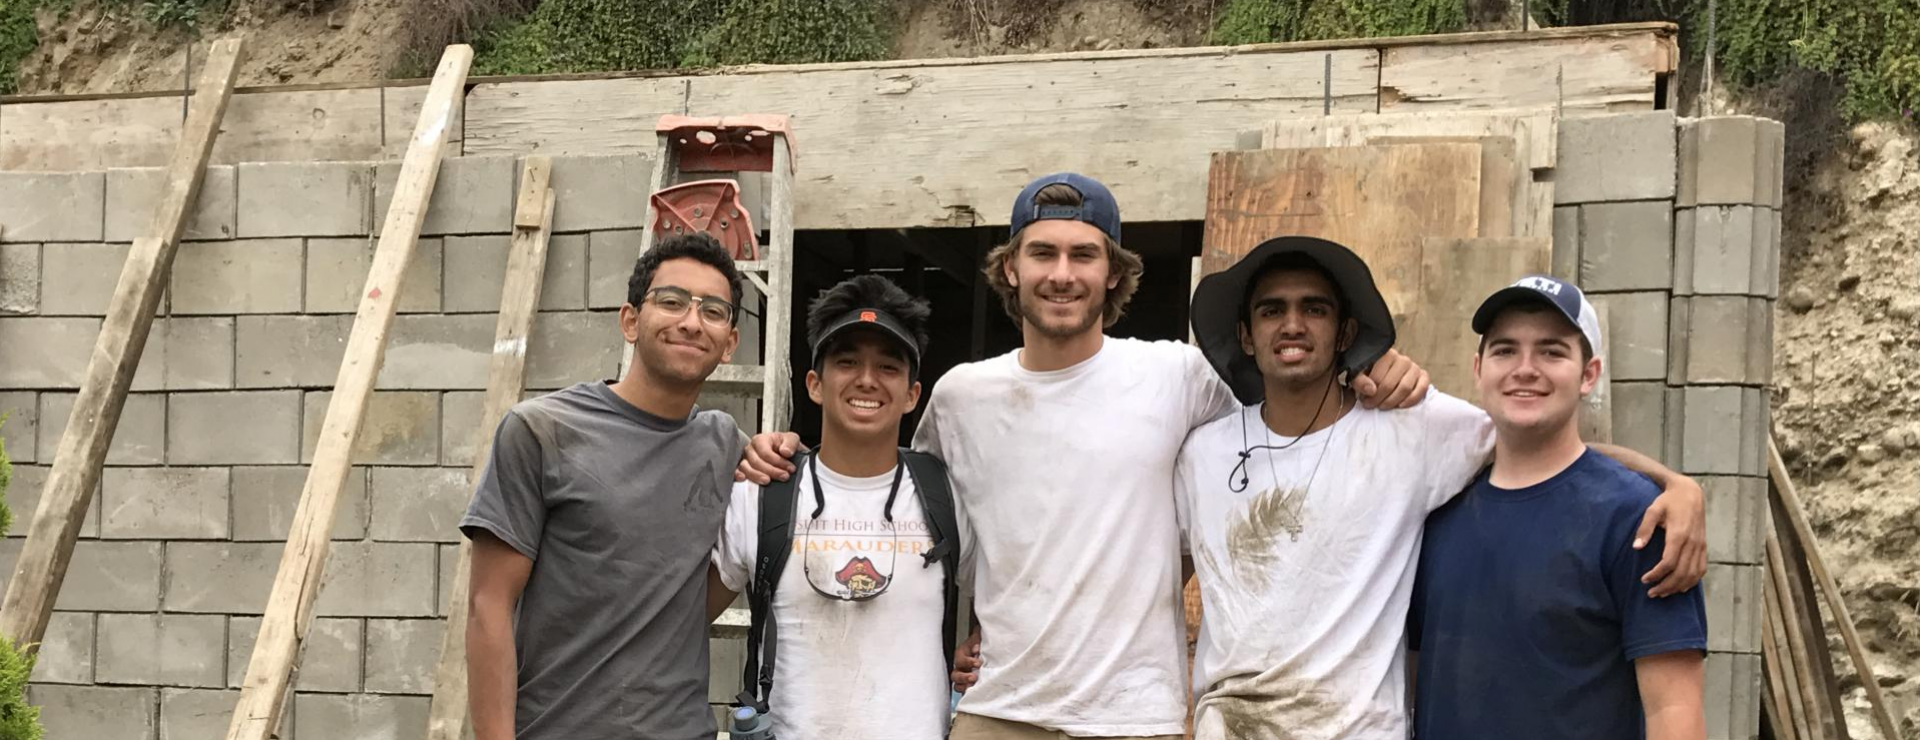 Group of 5 students smiling and standing in front of a wall being built in Tijuana Mexico